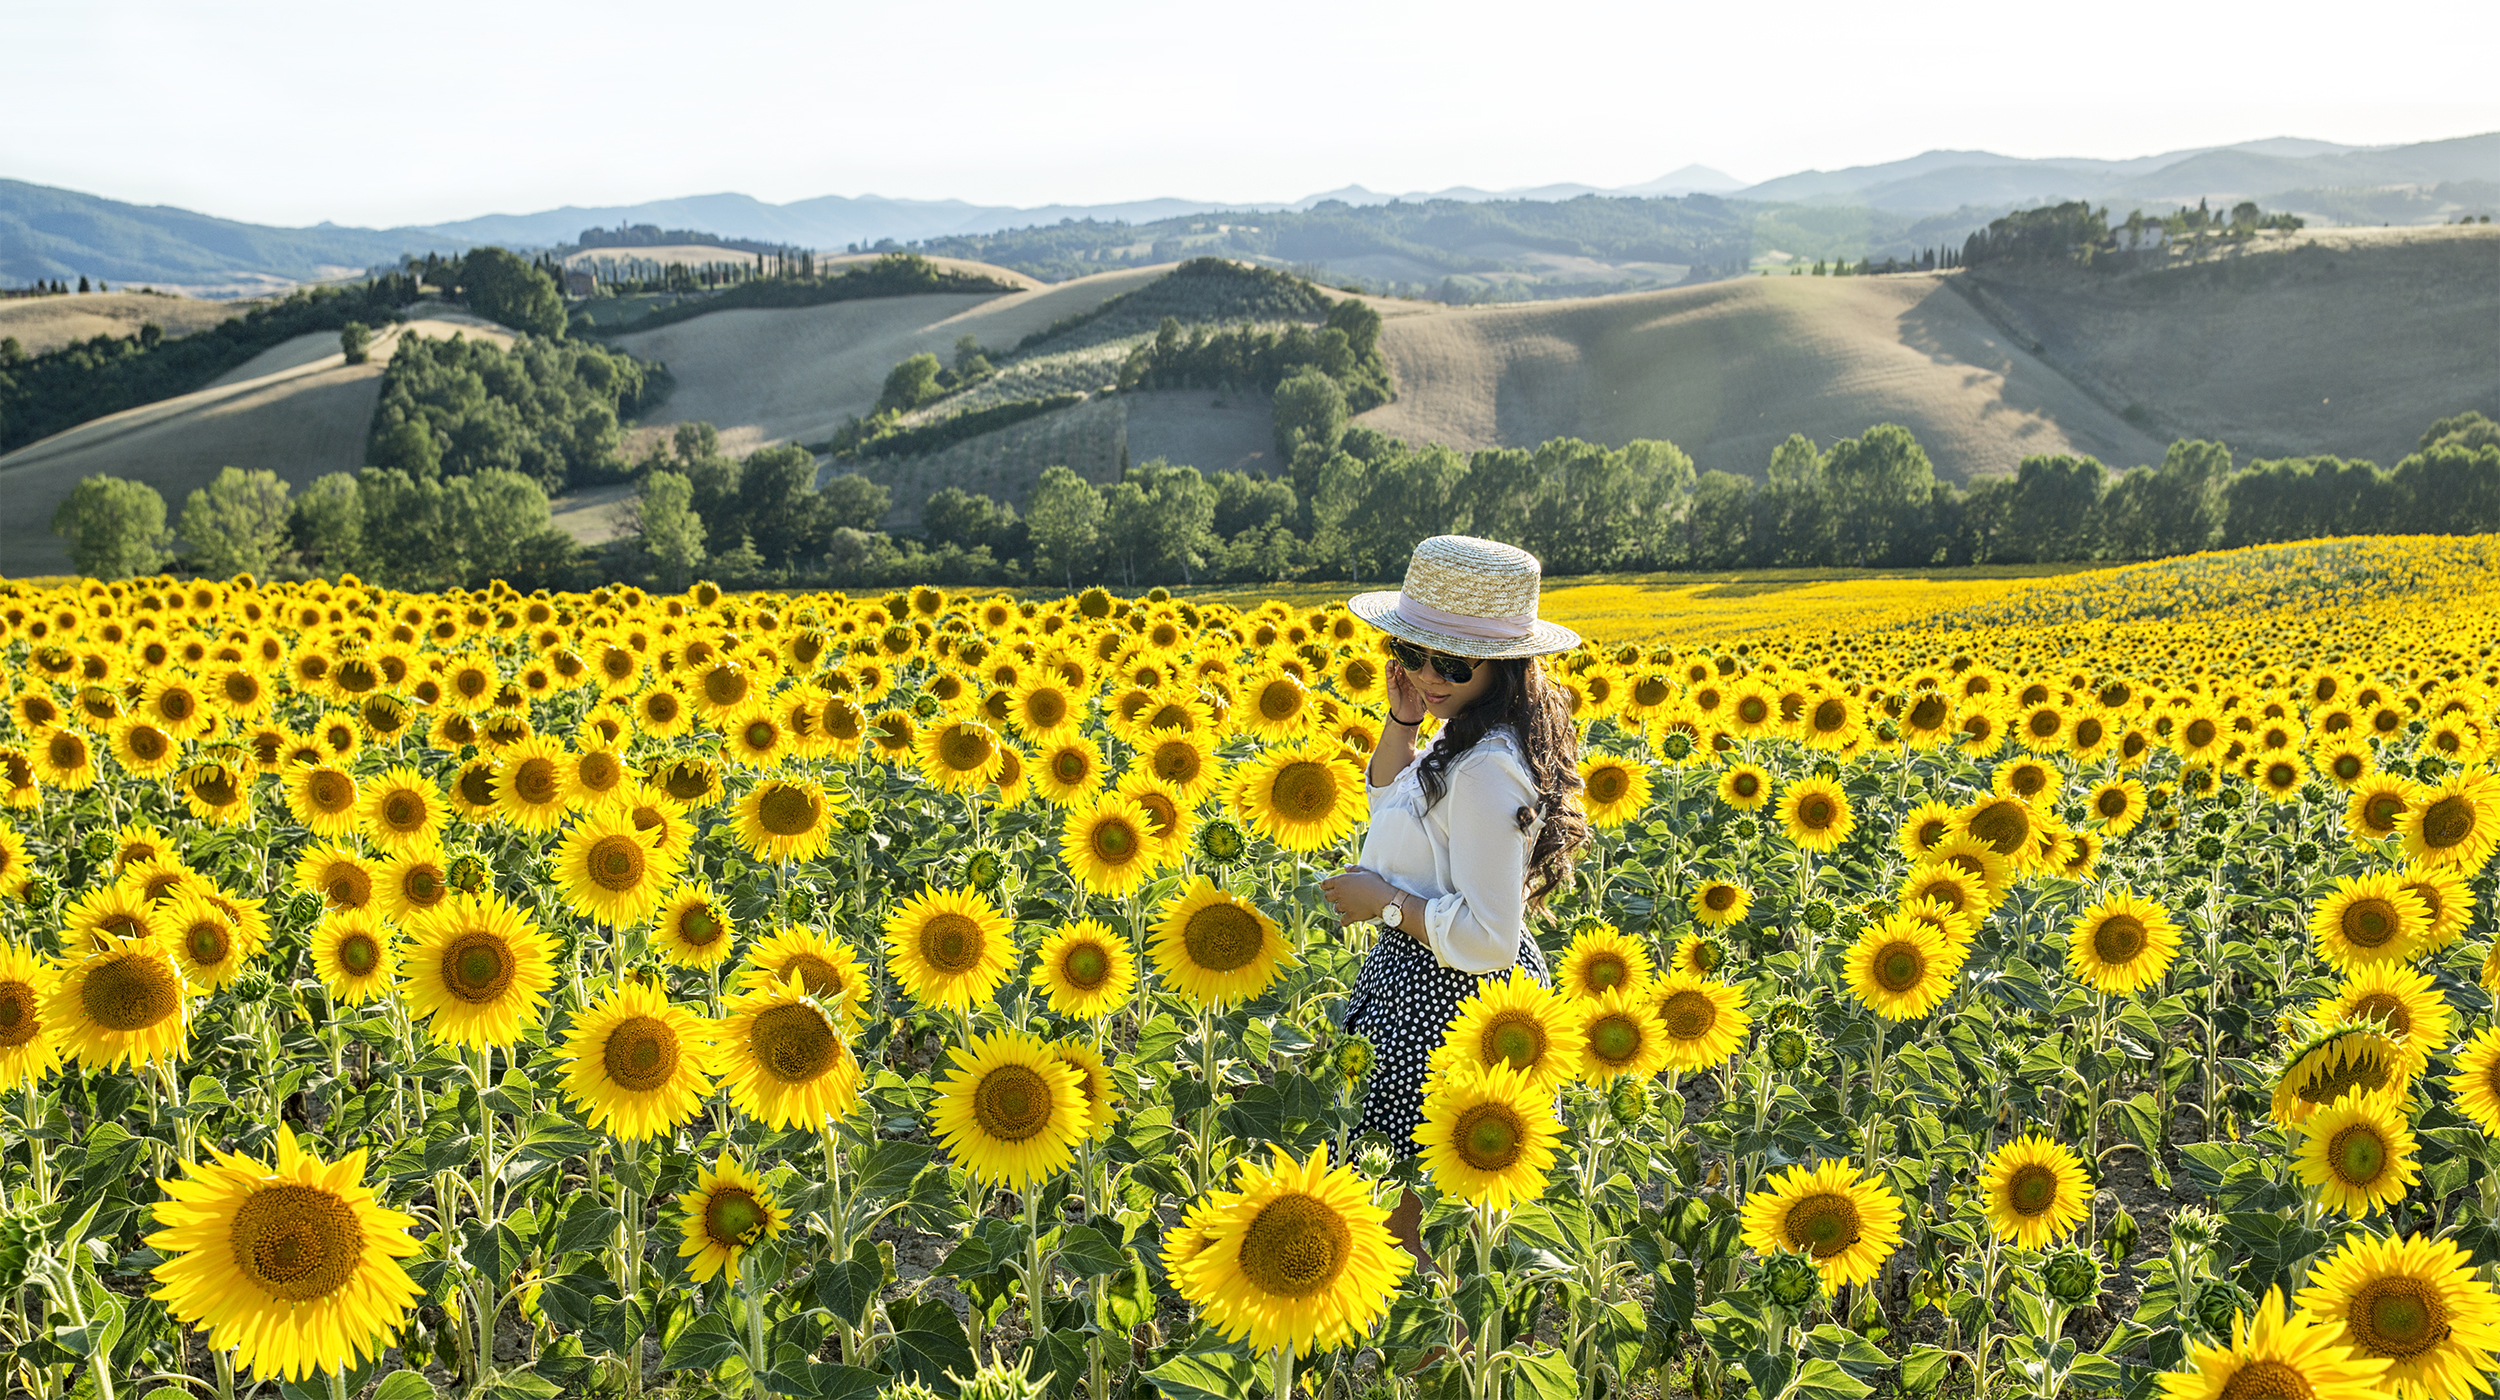 Sunflower fields in Tuscany: Where to find them 2017